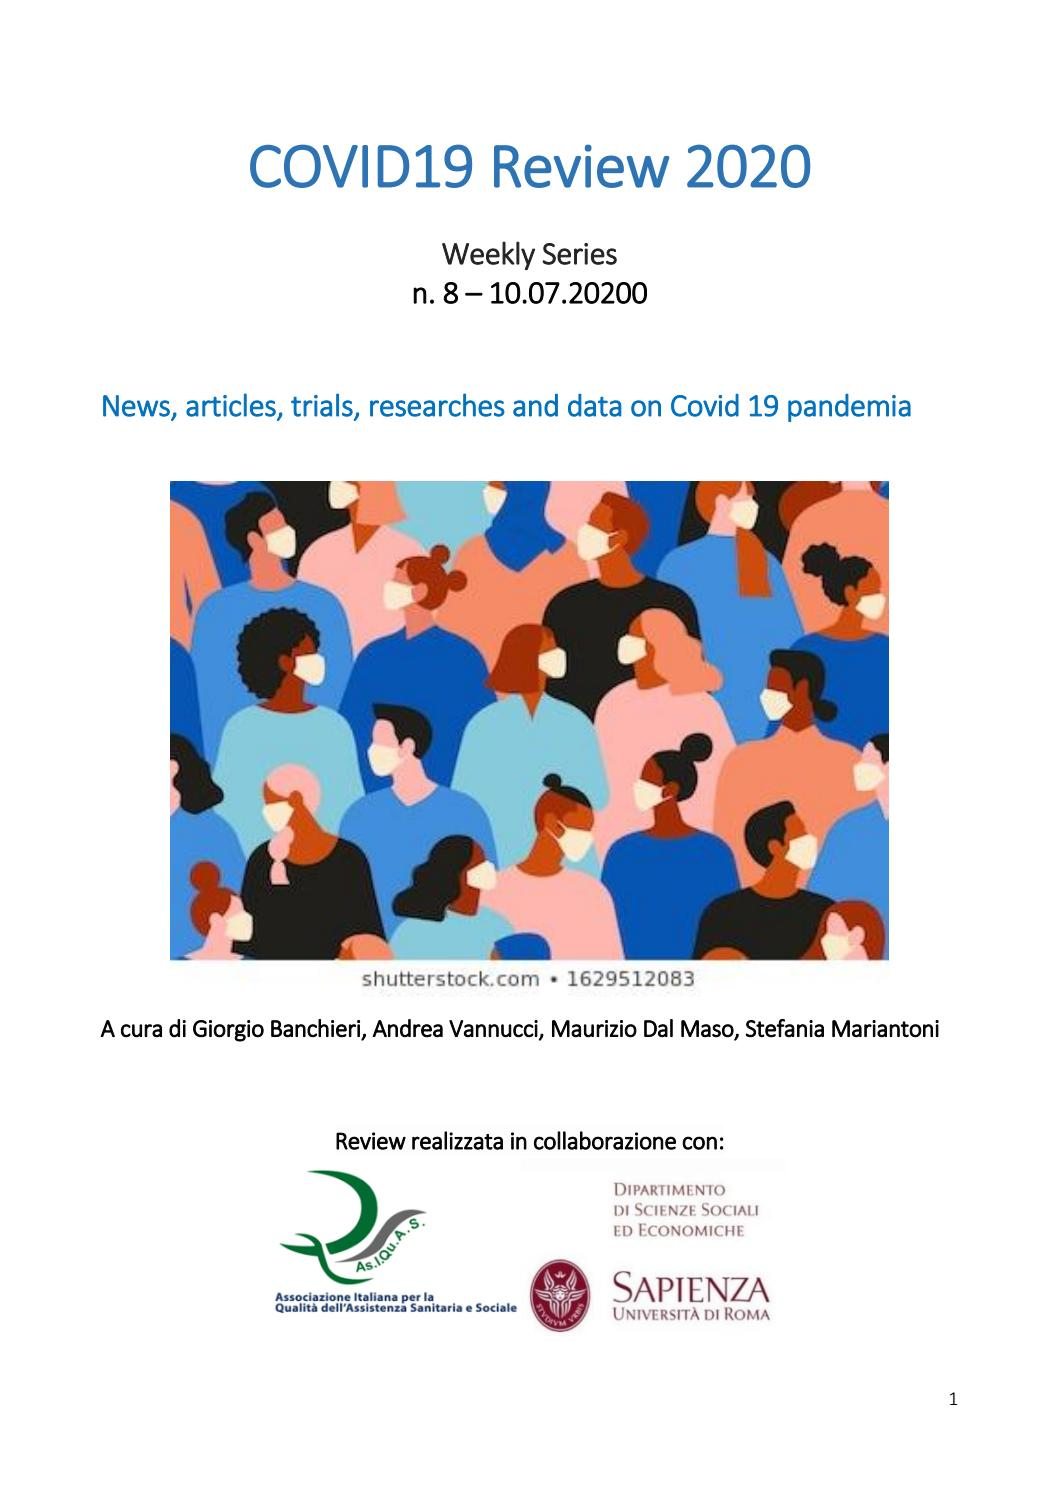 Weekly Series Covid19 Review 2020 By Com Publishing And Communication Issuu